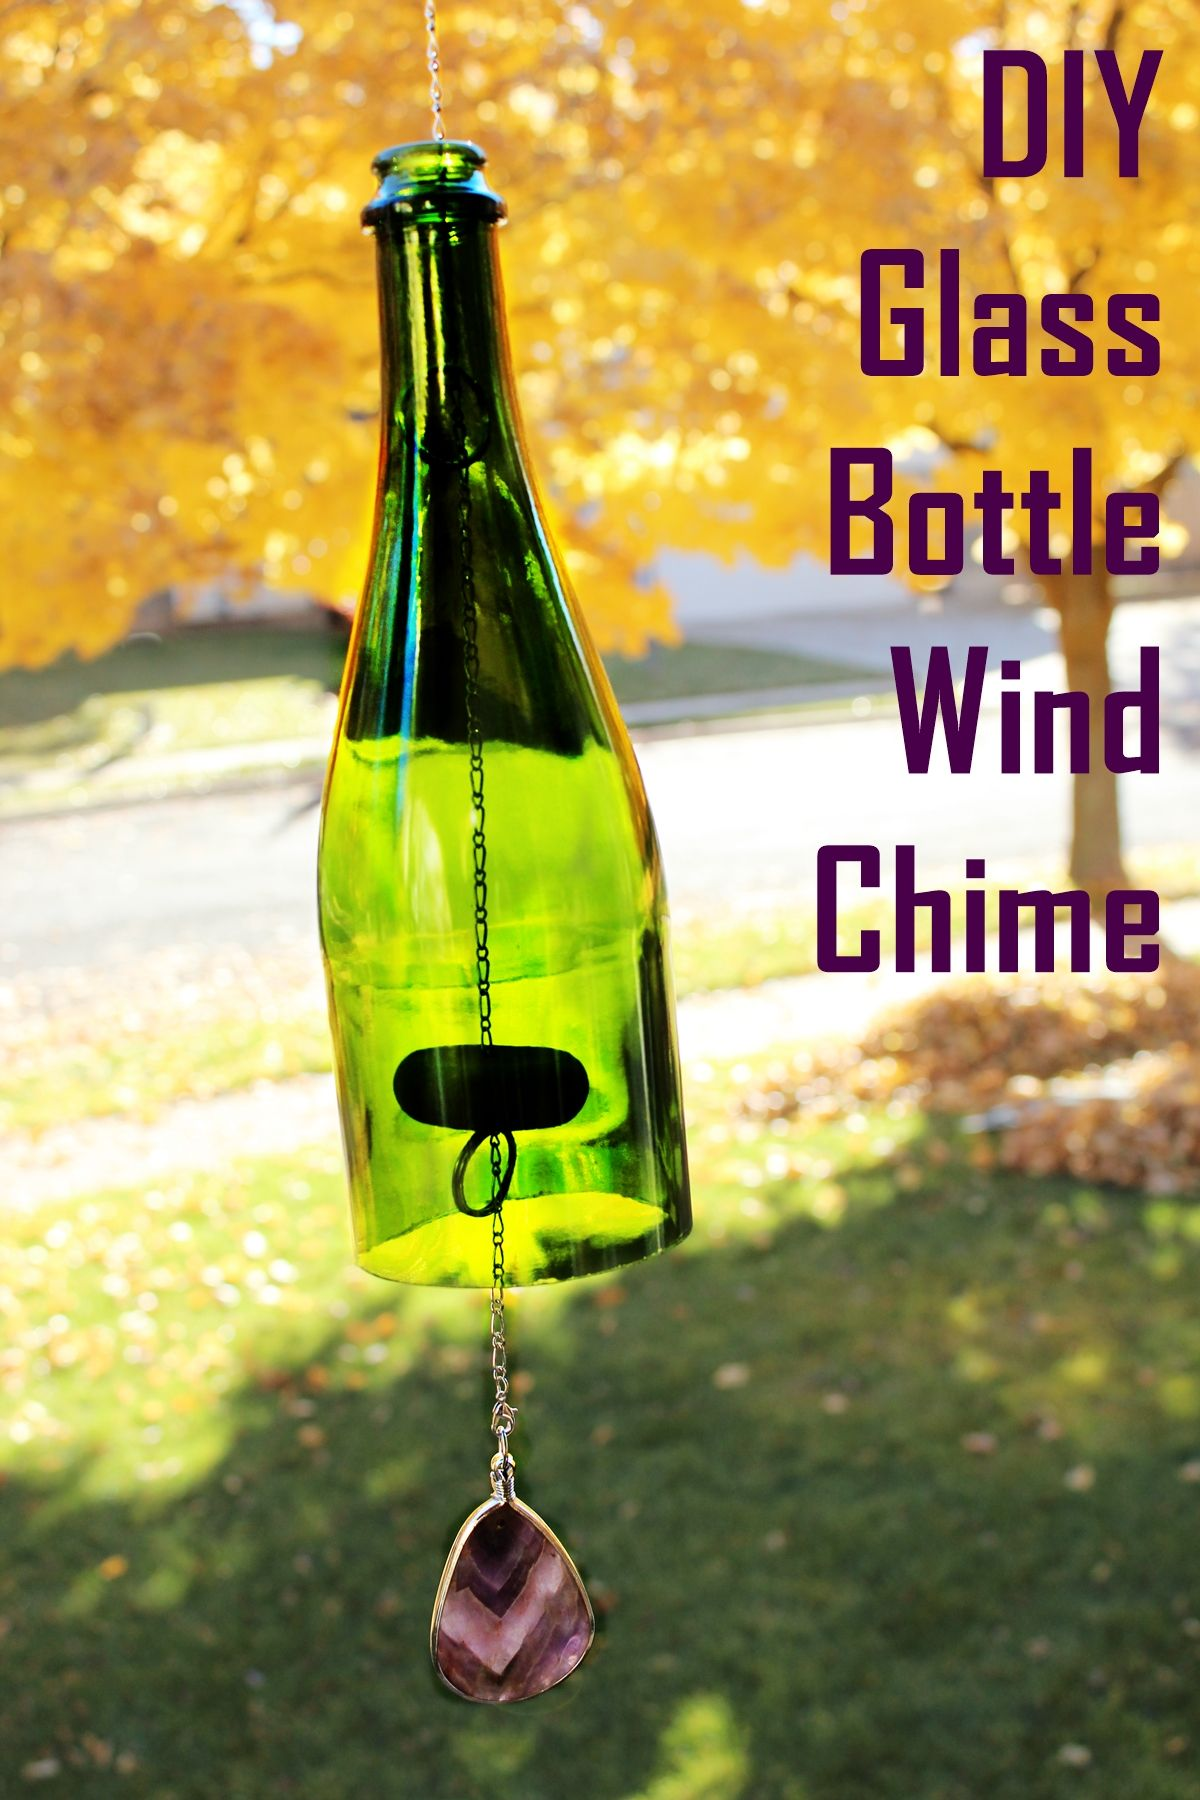 How to Make Wine Bottle Wind Chime forecasting